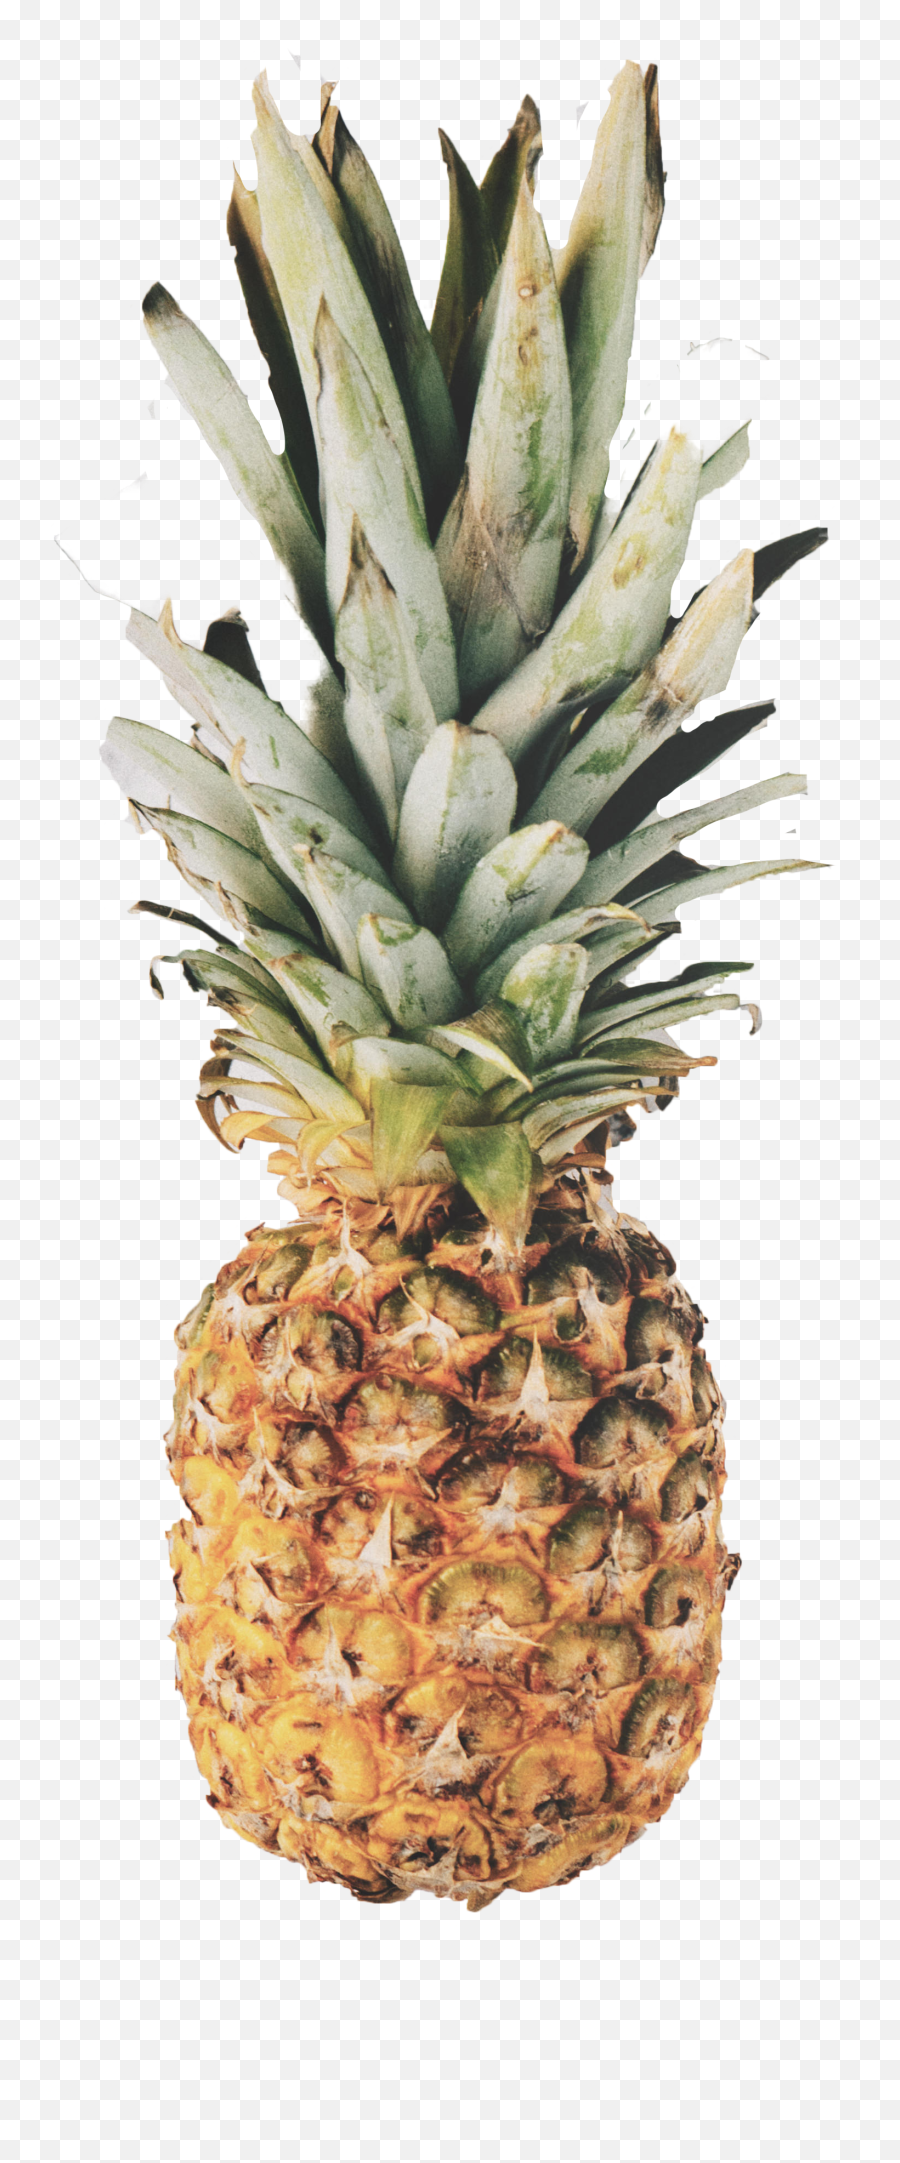 Download Pineapple Png Image For Free Marble Rose Gold Pineapple Free Transparent Png Images Pngaaa Com